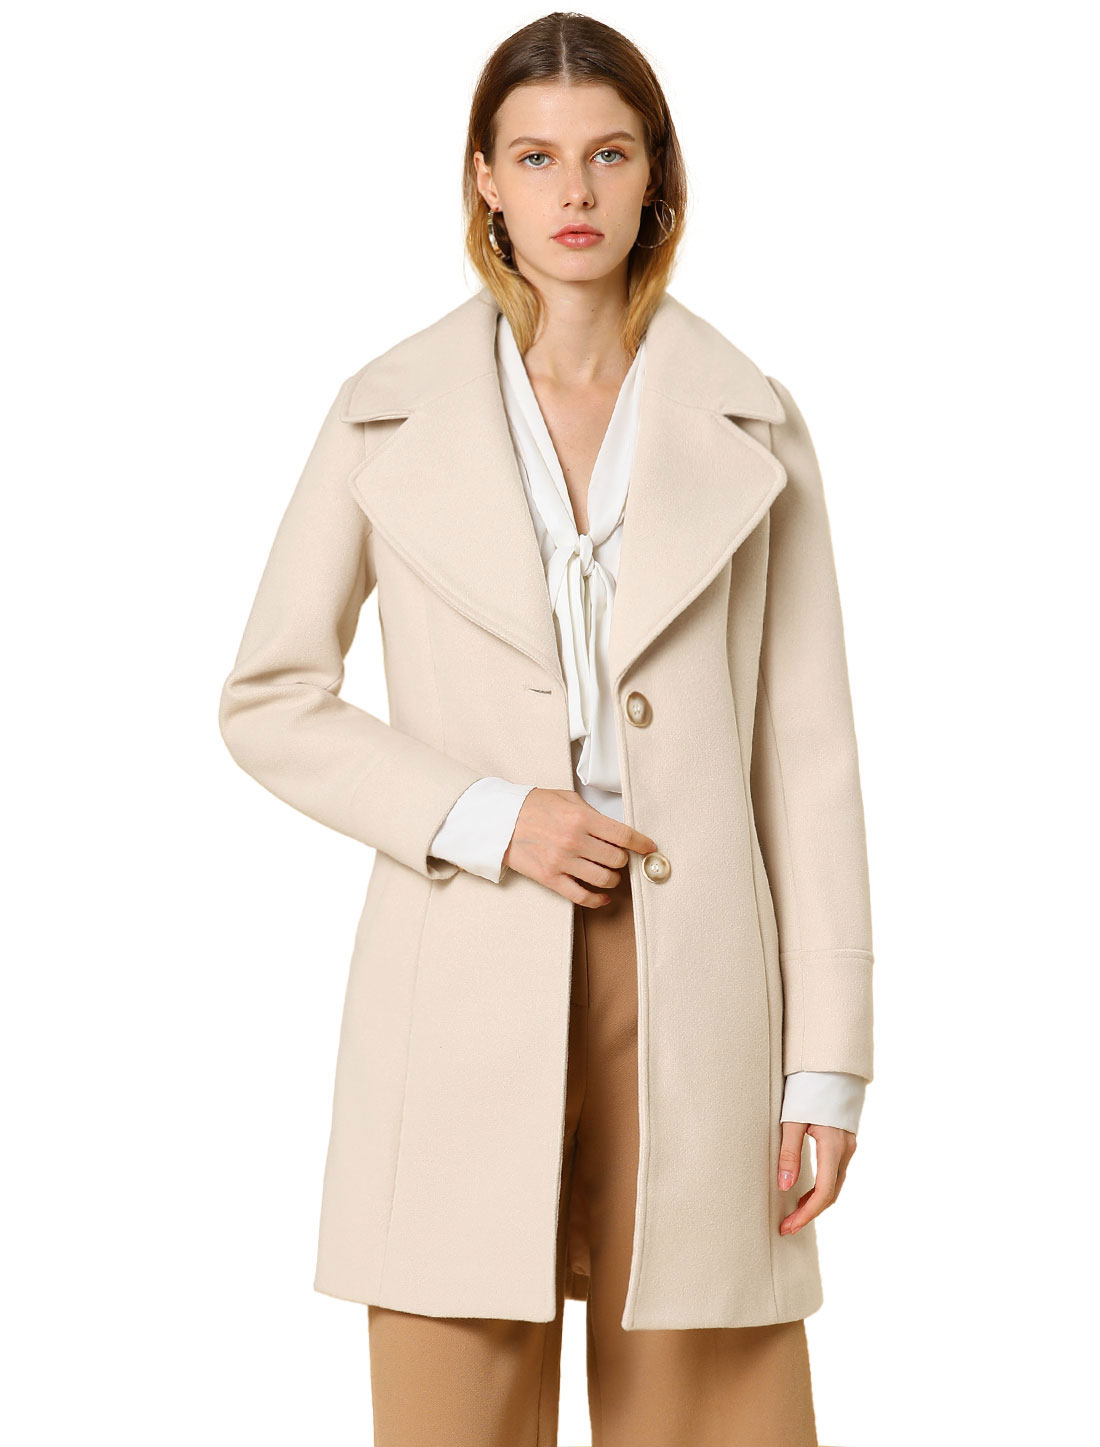 Allegra K Women's Elegant Notched Lapel Button Winter Trench Coat Off-White S